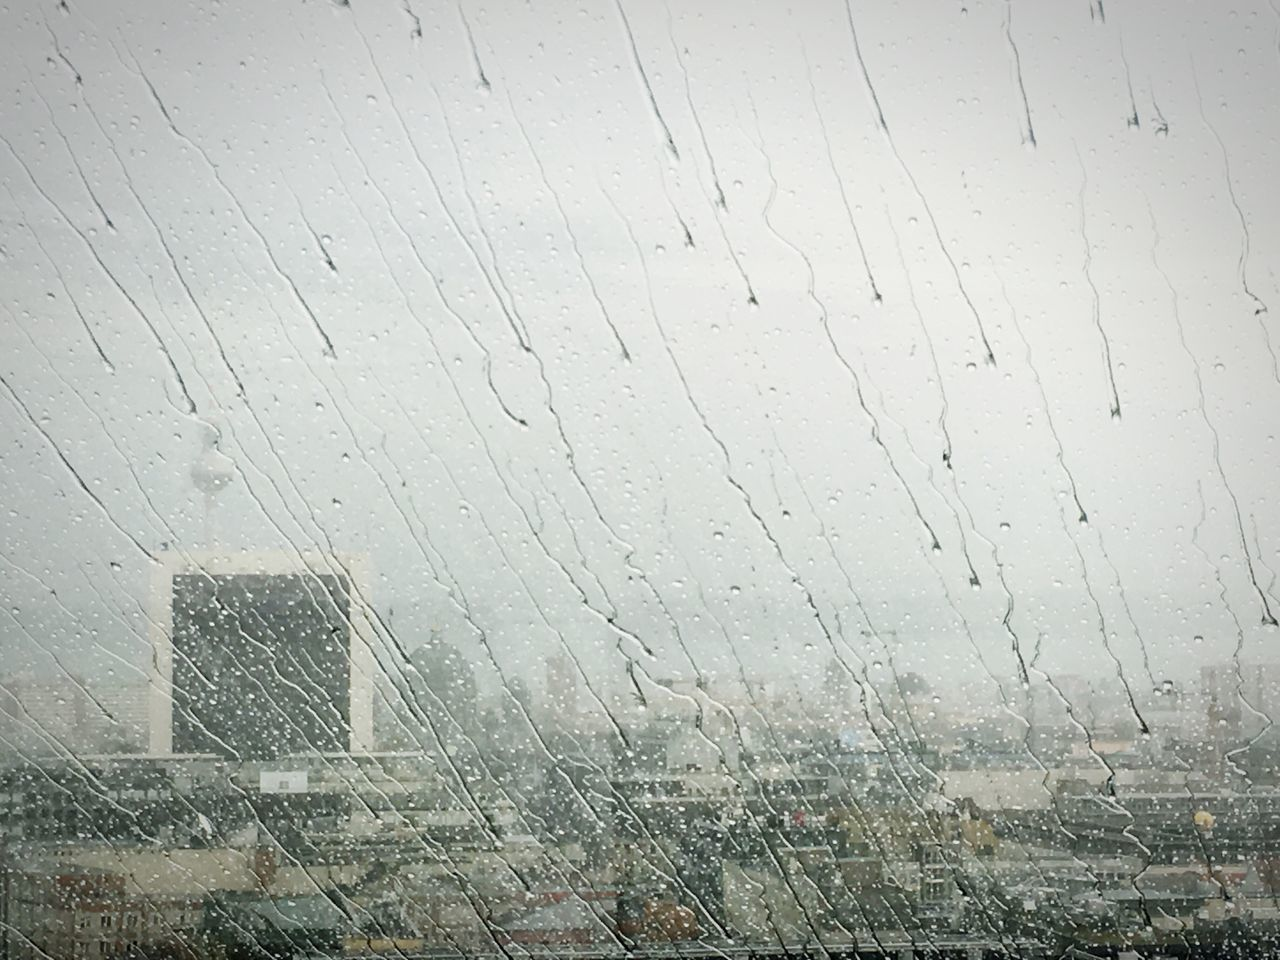 rain, wet, weather, no people, raindrop, drop, window, day, built structure, indoors, architecture, water, building exterior, close-up